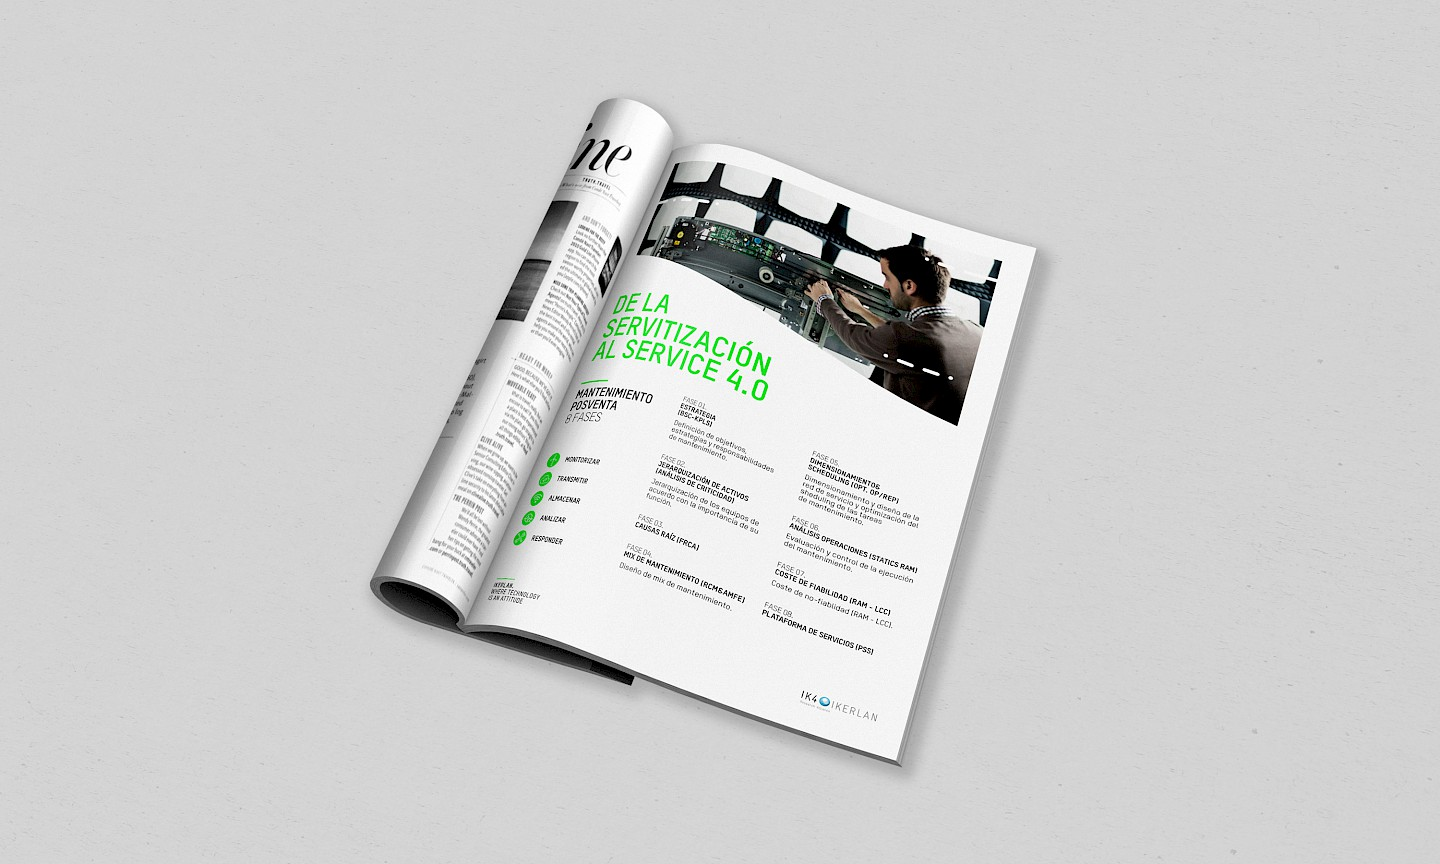 ikerlan move branding design technology magazine